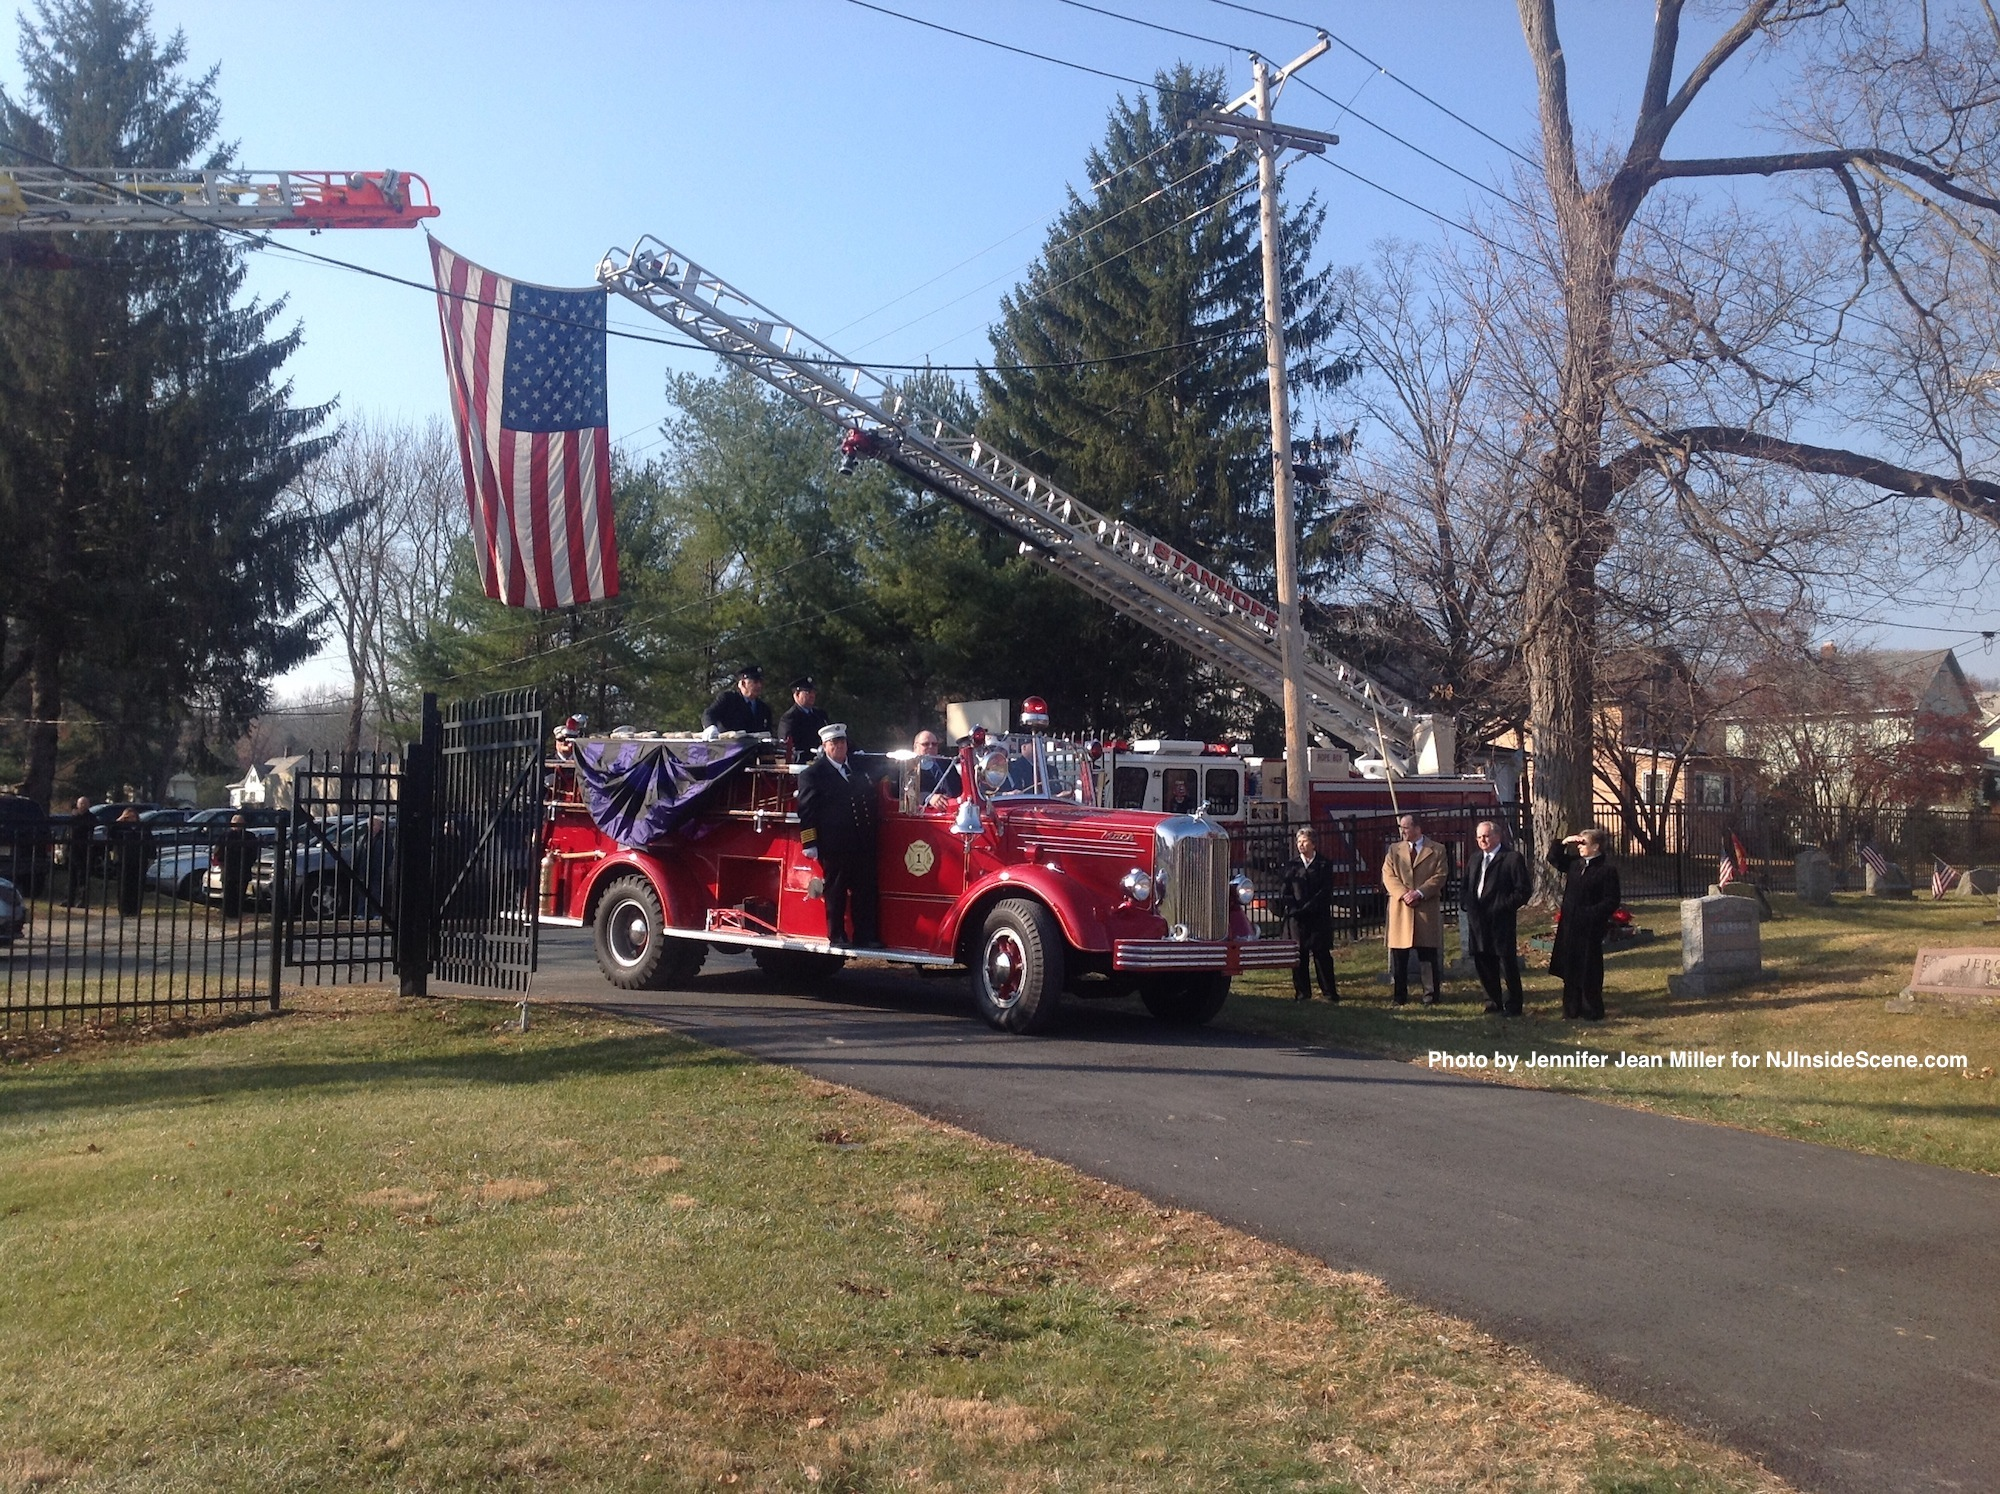 The antique fire engine delivers Charlie Thom's casket to its final resting place.